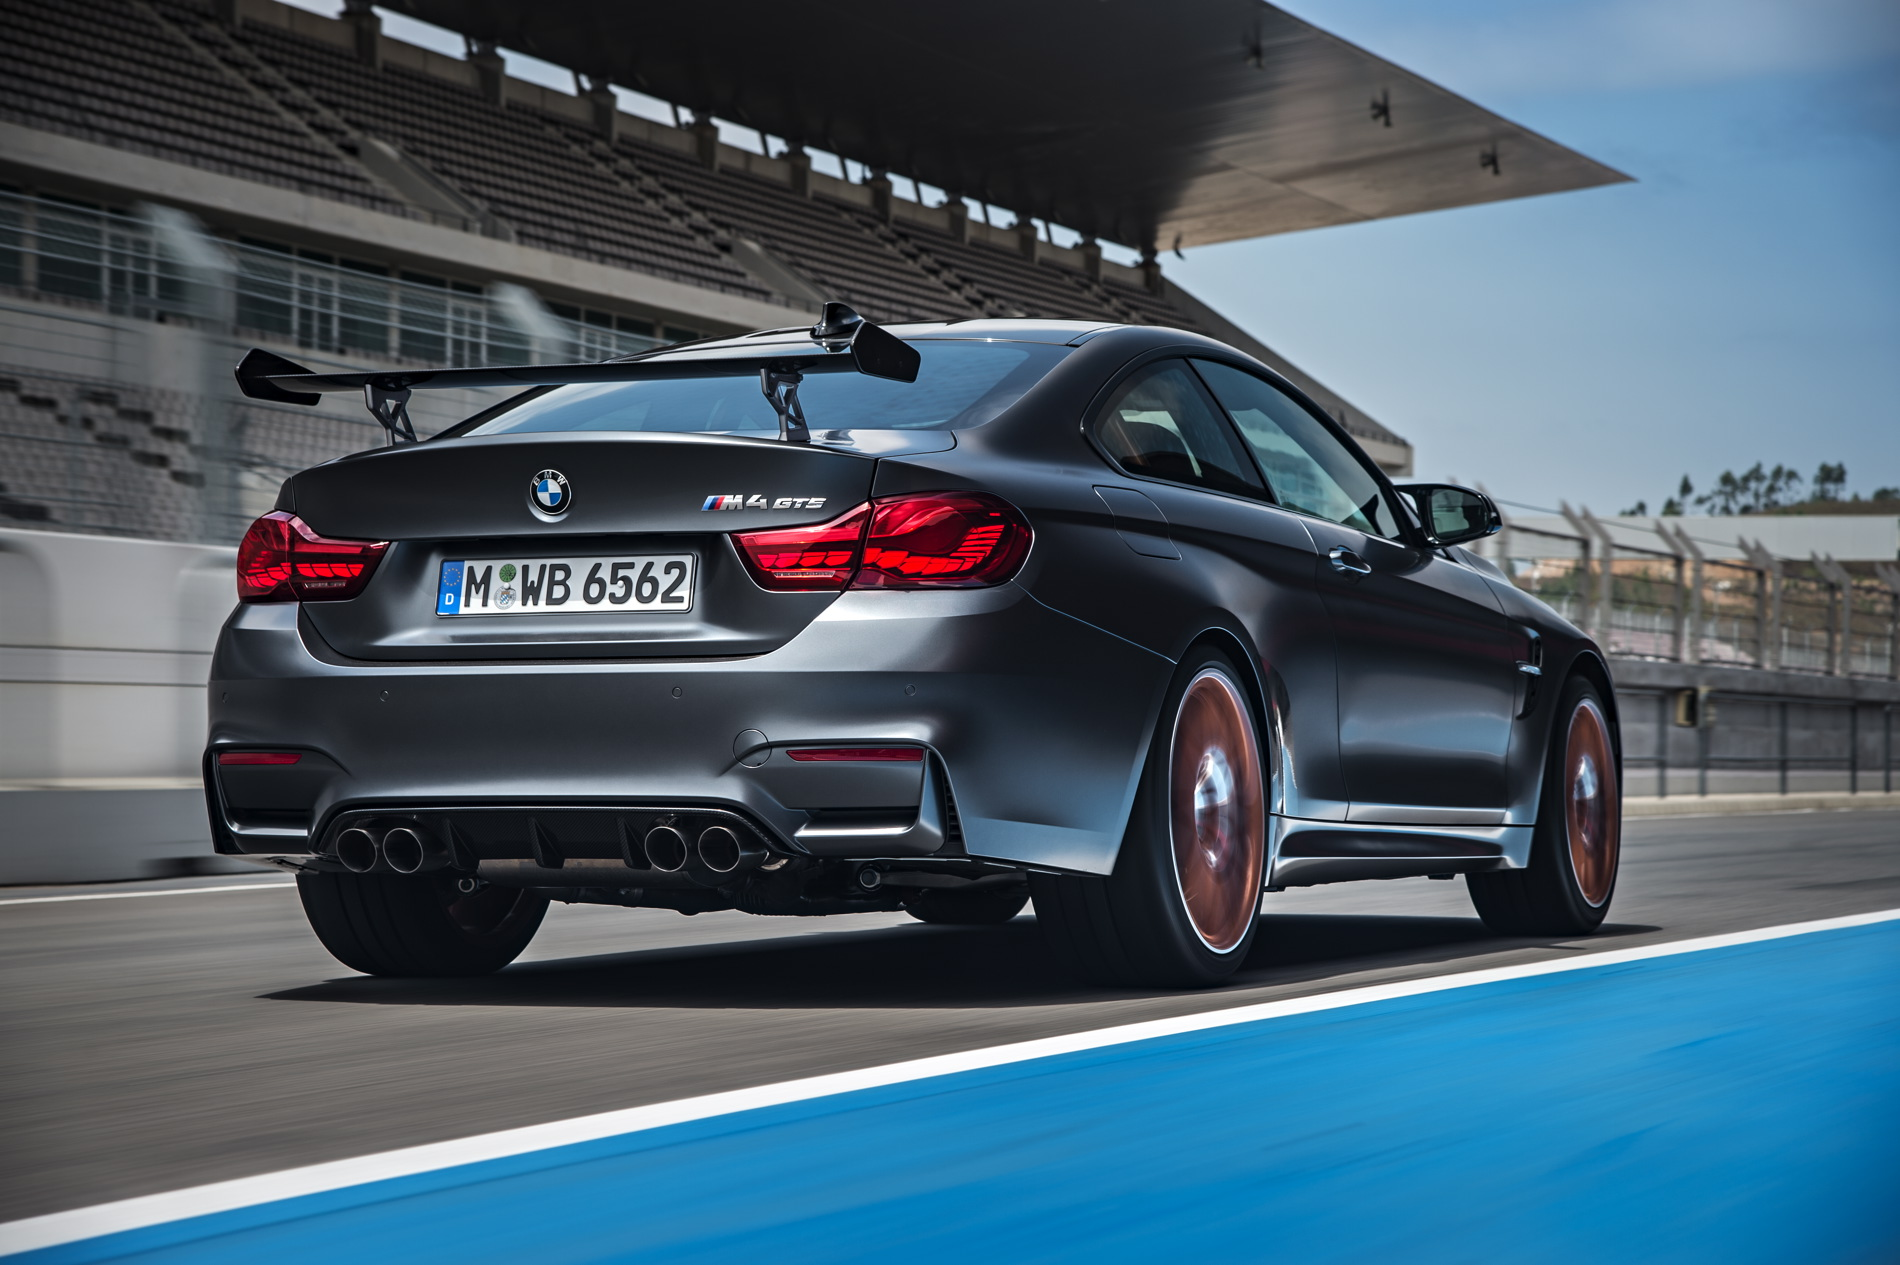 2016 BMW M4 GTS images 1900x1200 wallpaper 37